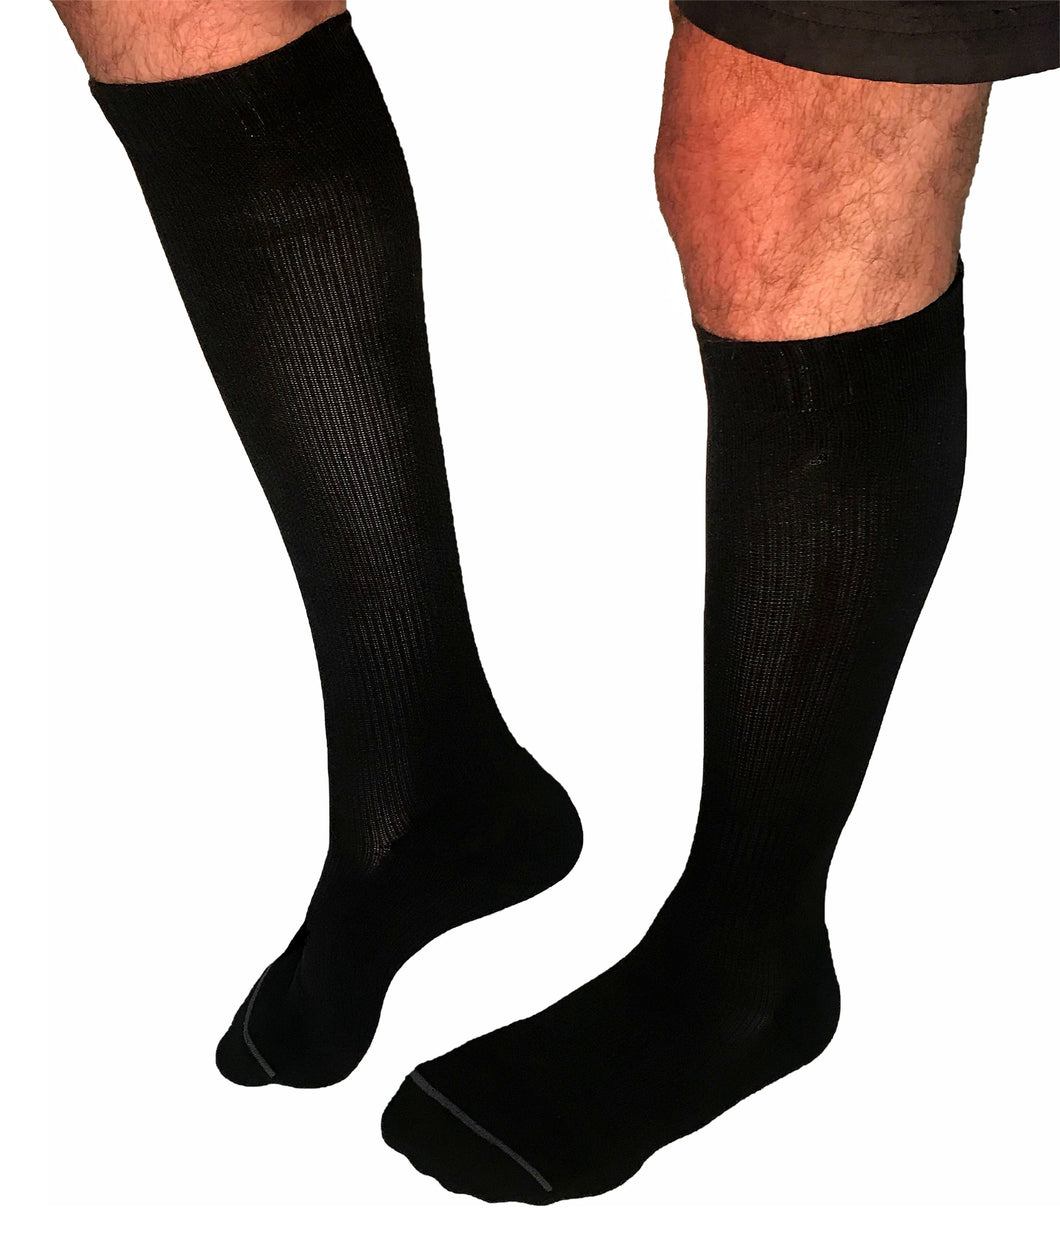 Shock Aid ultimate Athletic Compression Socks 20-30 mm/Hg- Bamboo- Over the Calf_mositure Wicking